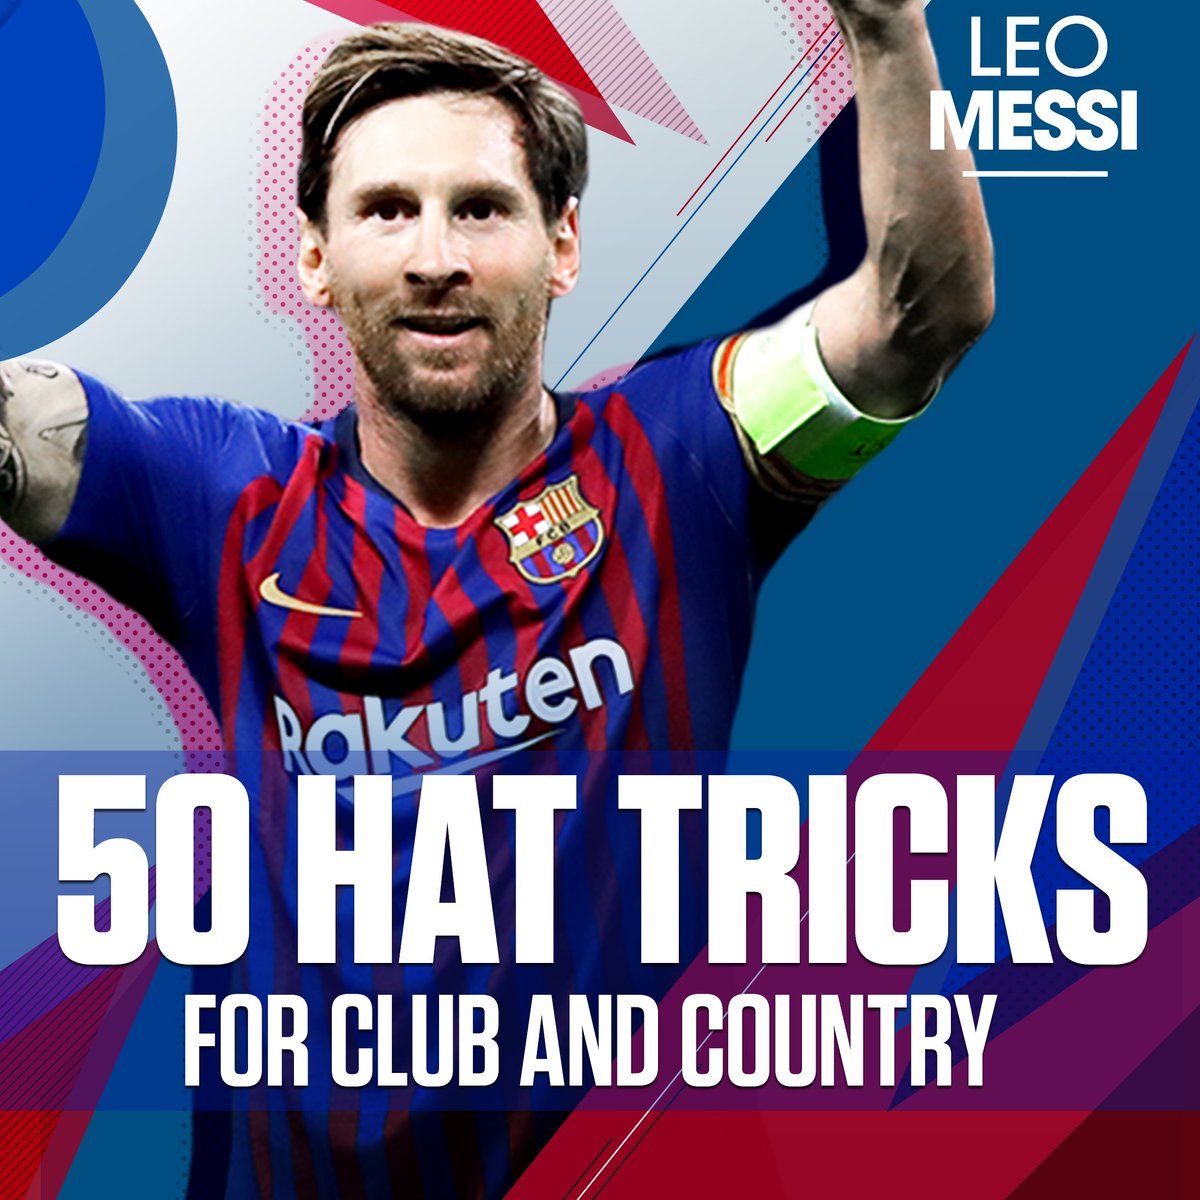 That's 50 career hat tricks for Leo Messi! 🐐